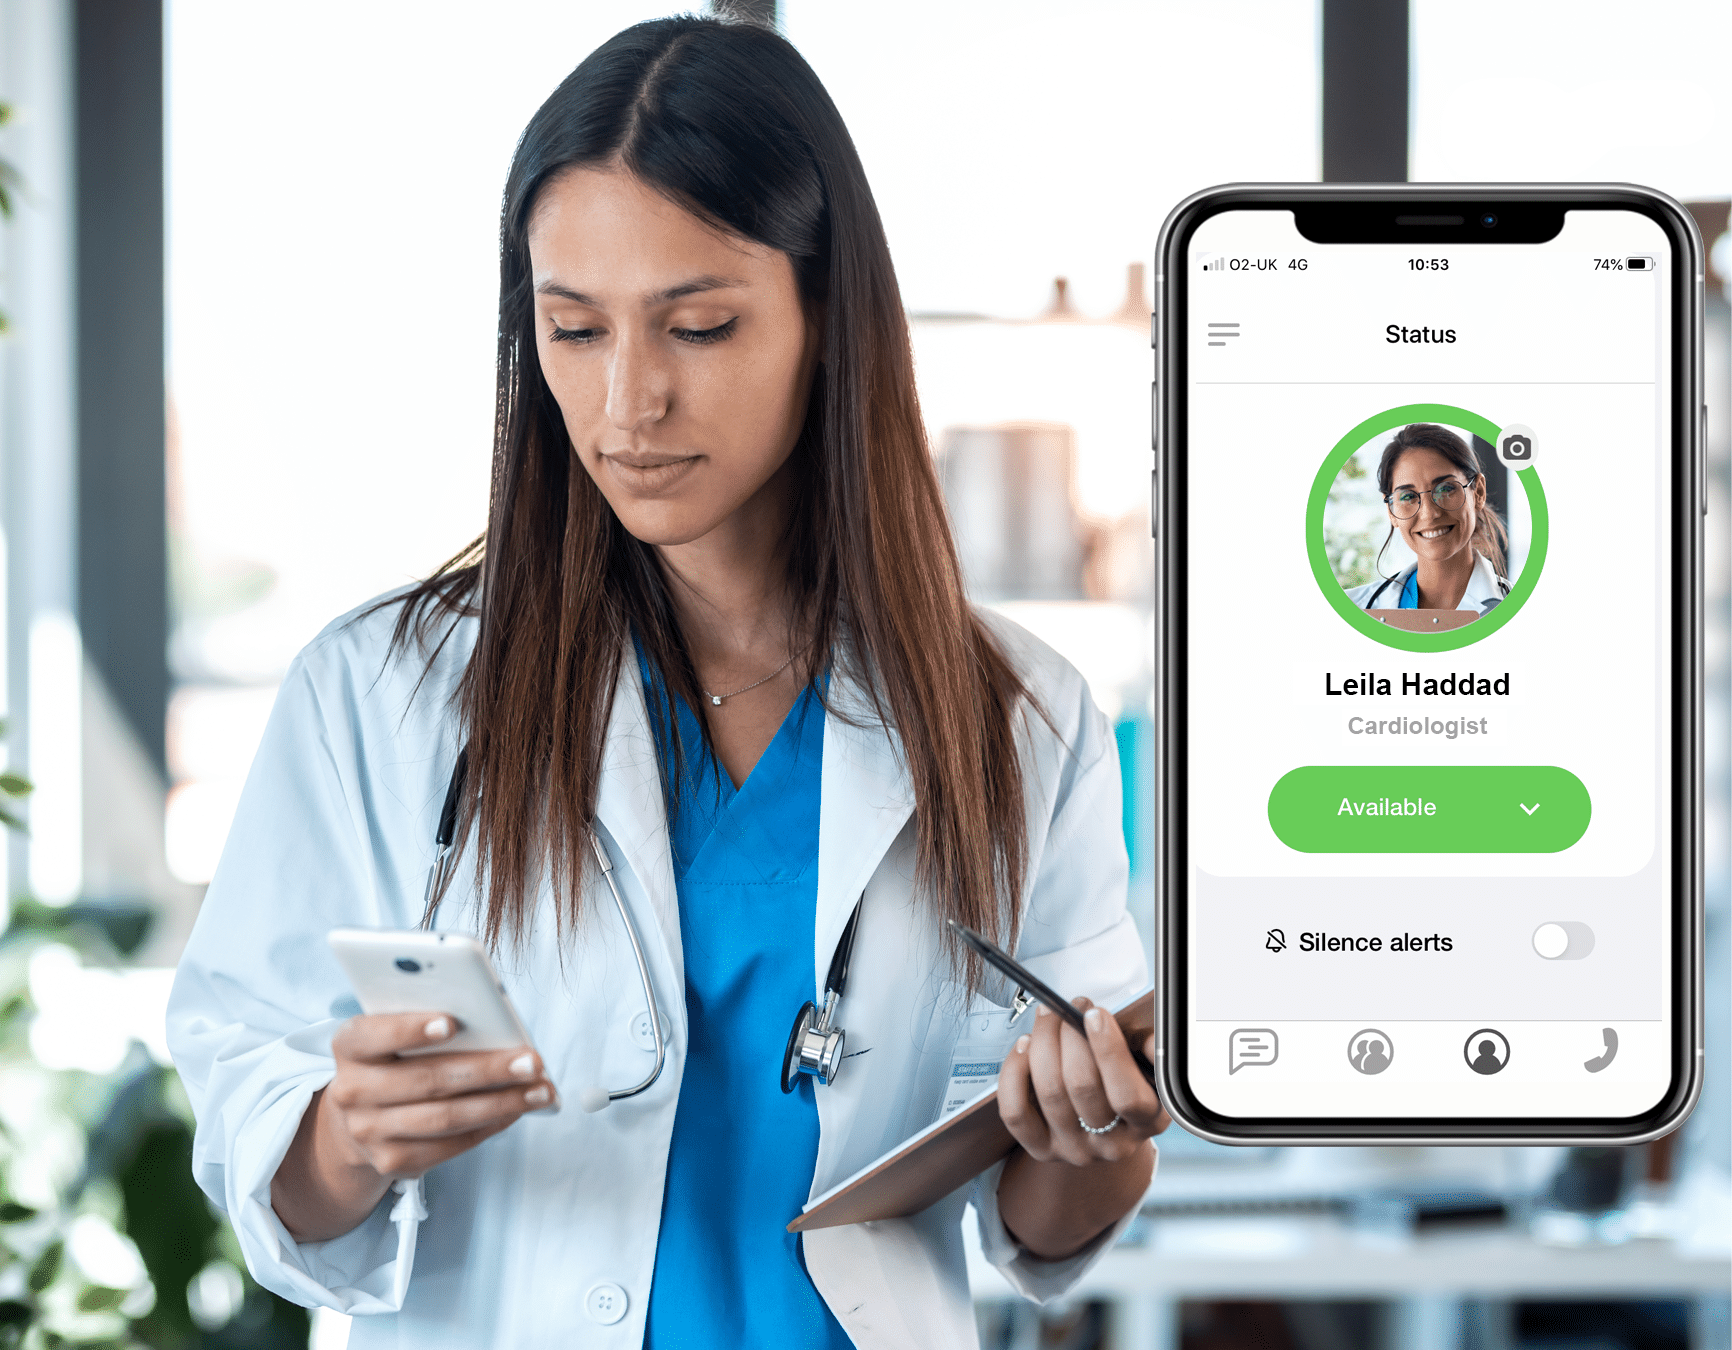 Doctor using a smartphone running the Multitone messaging app, and showing the status screen on the phone.